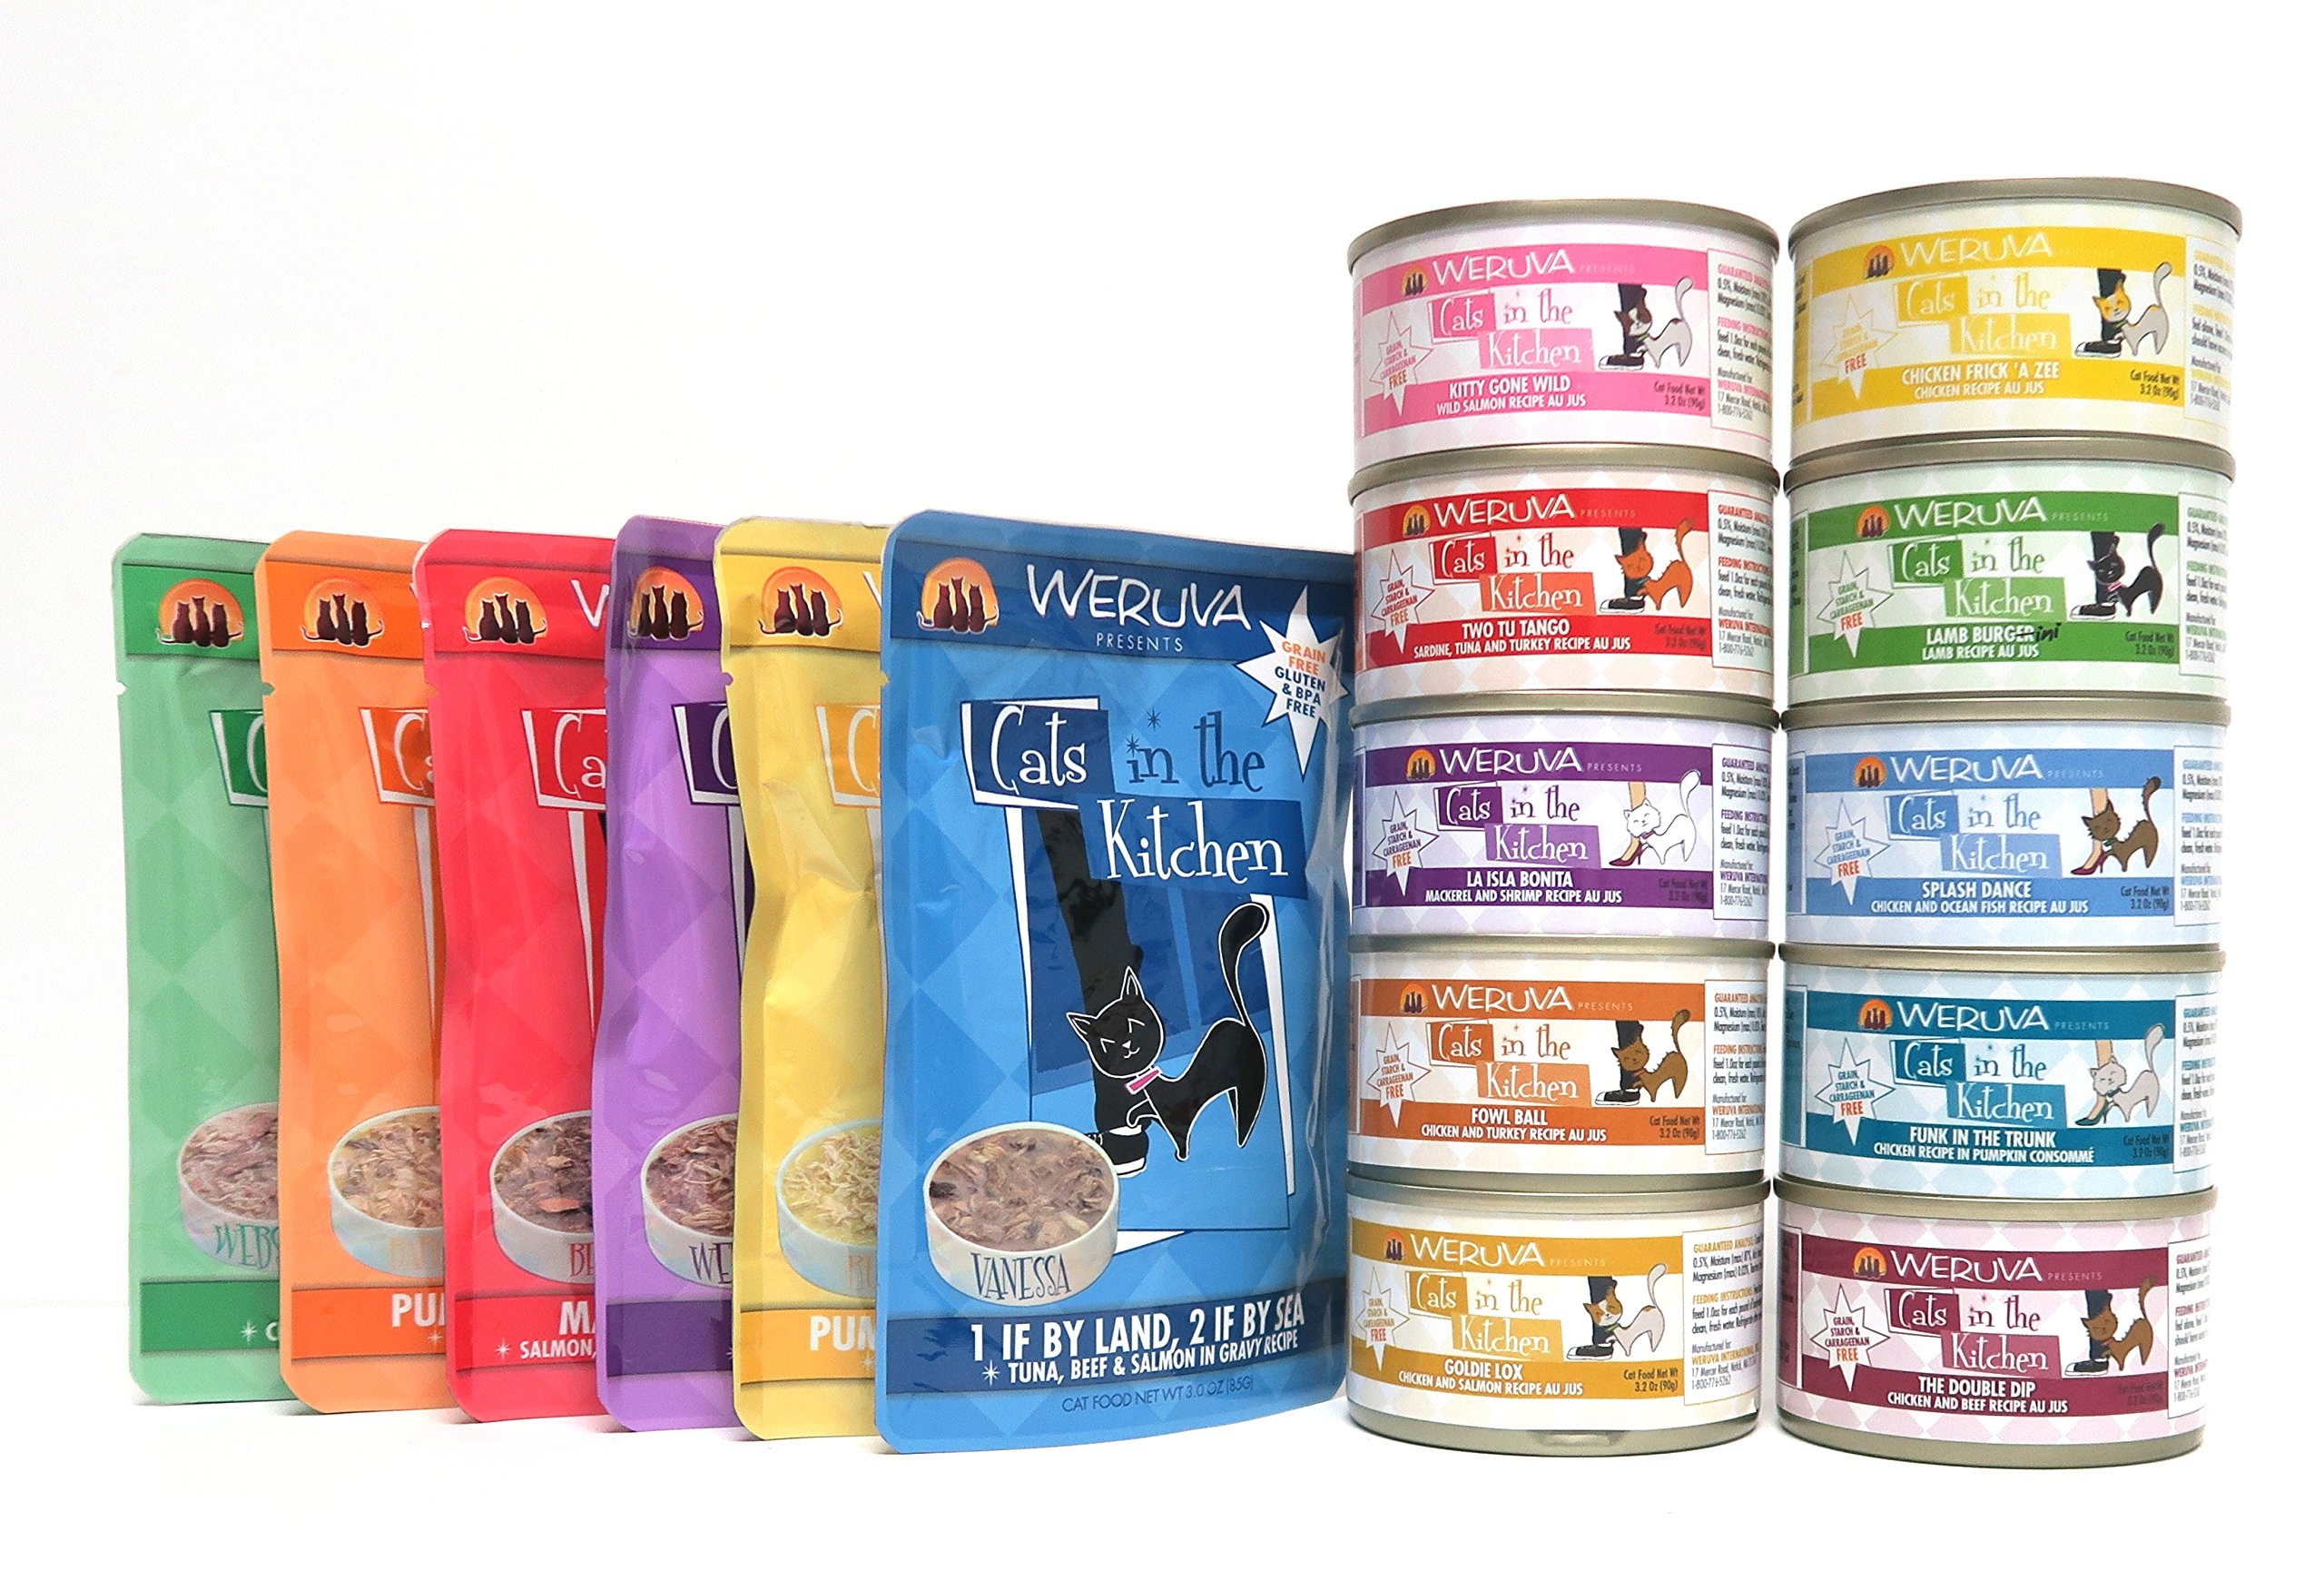 Weruva Cats in the Kitchen Grain Free Wet Cat Food Variety Sampler Pack - 16 Flavors (10 Cans & 6 Pouches) - 3 Ounces Each (16 Total Items)